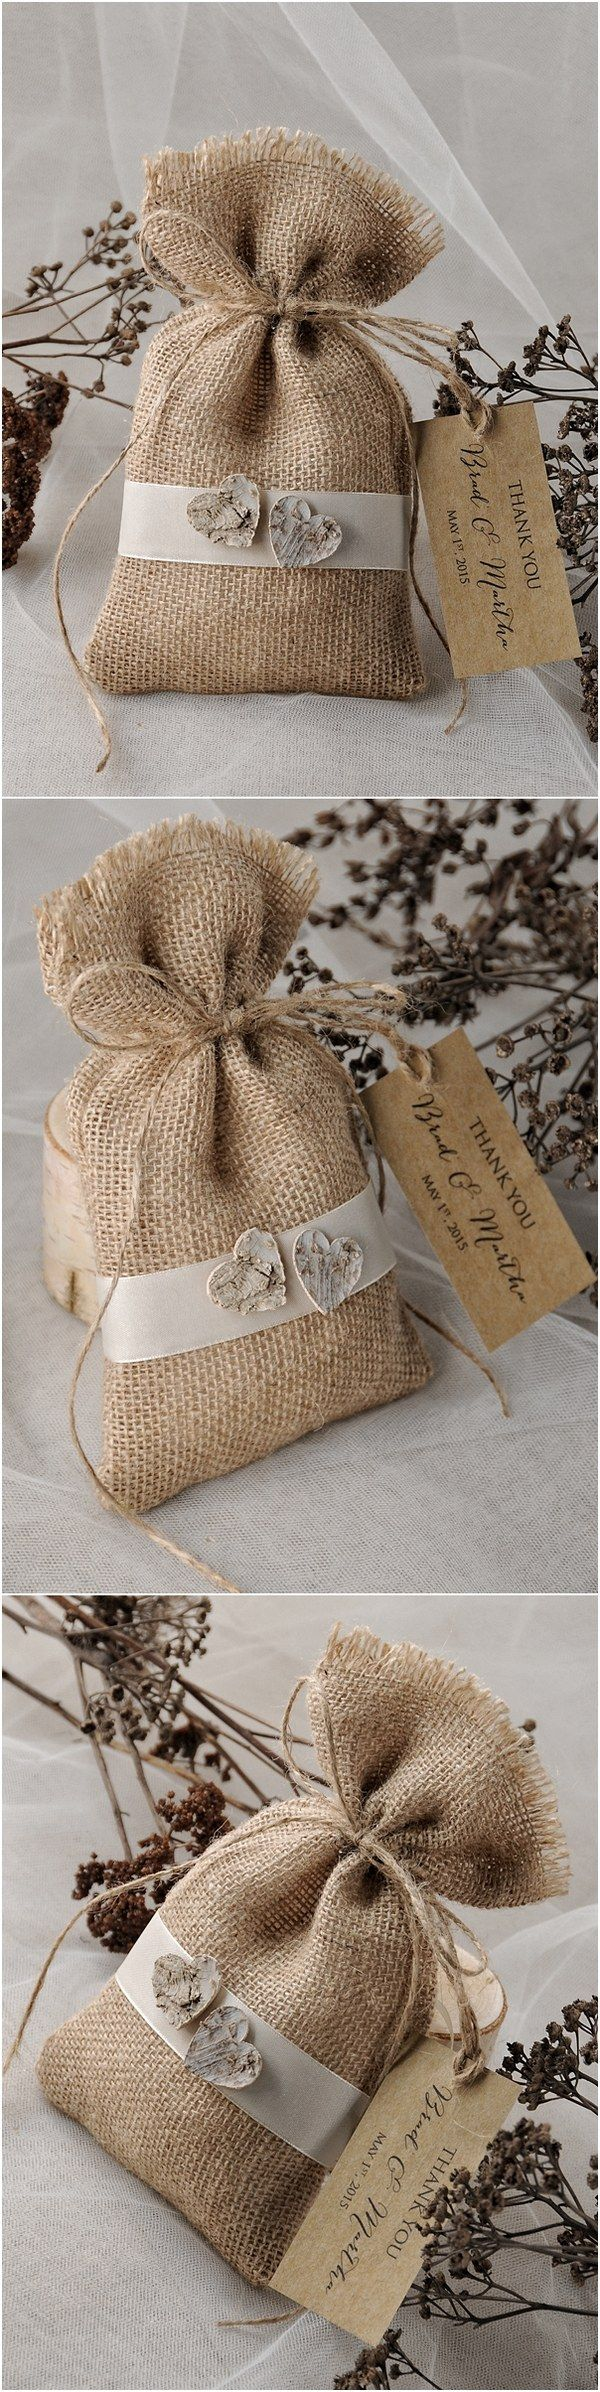 Rustic country burlap wedding favor bags #rusticwedding #weddinggifts #countrywedding